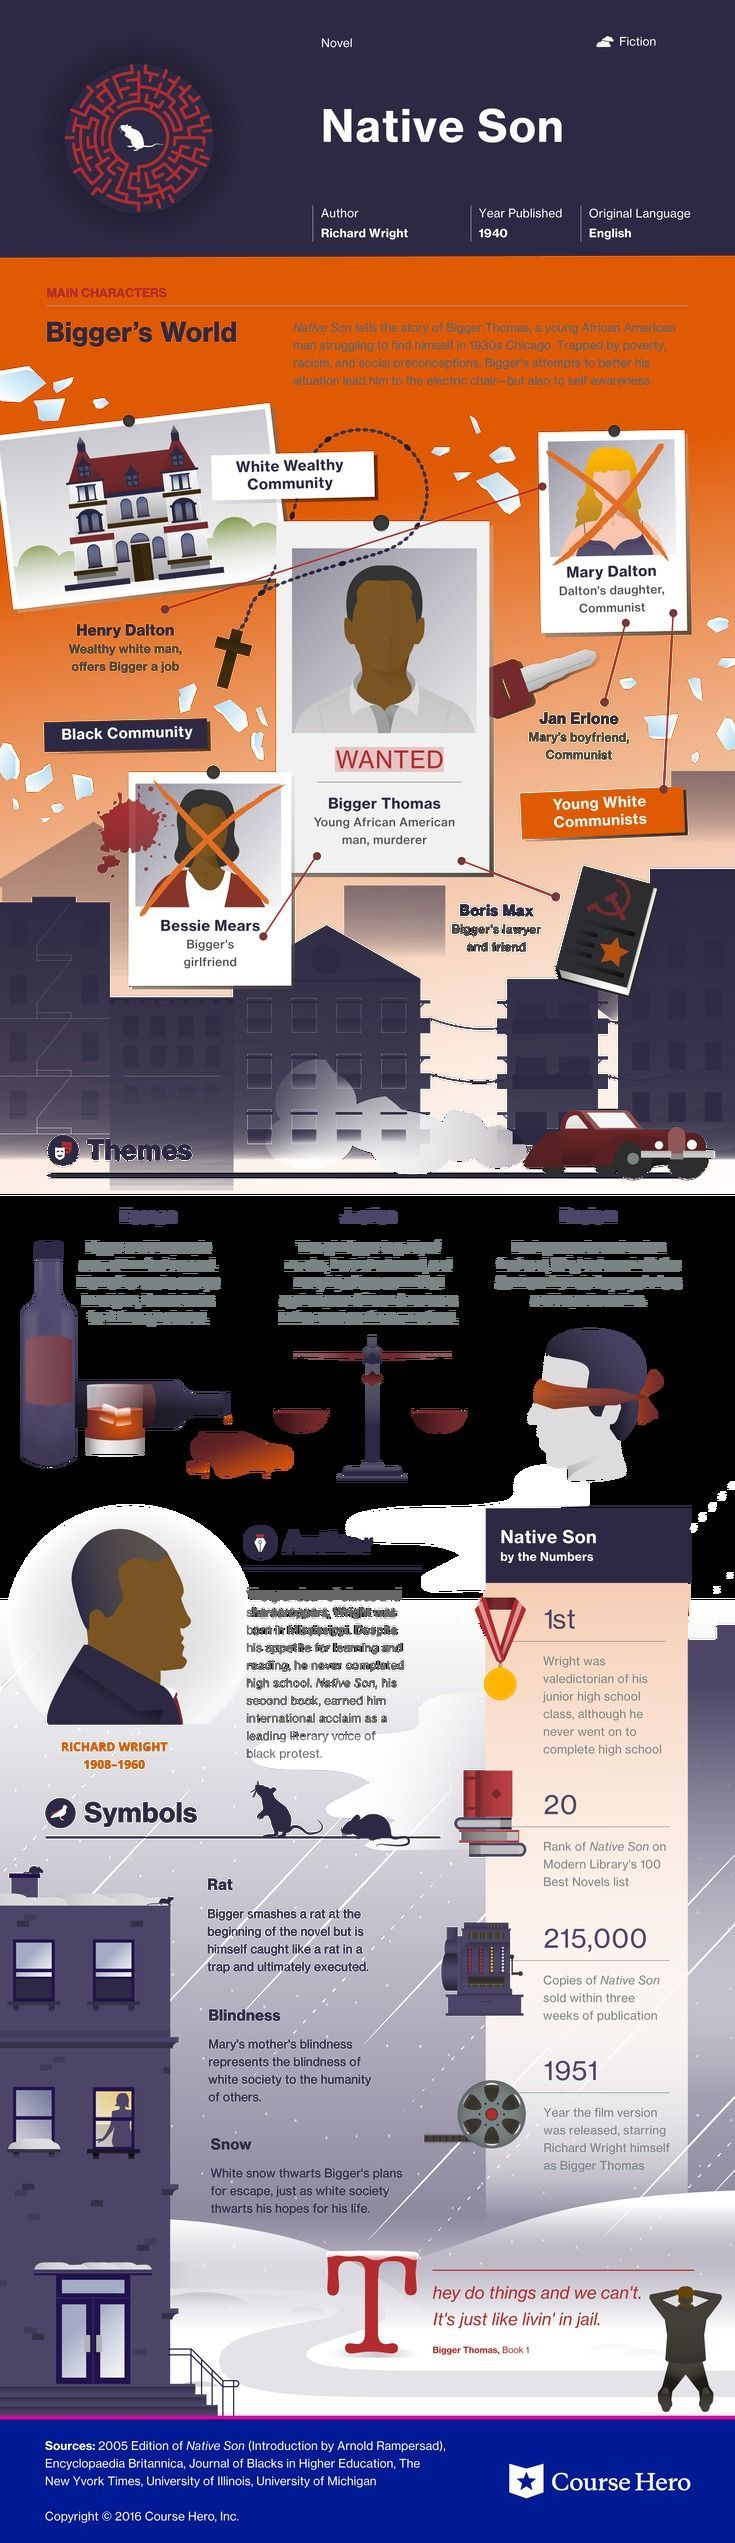 This @CourseHero infographic on Native Son is both visually stunning and informative!